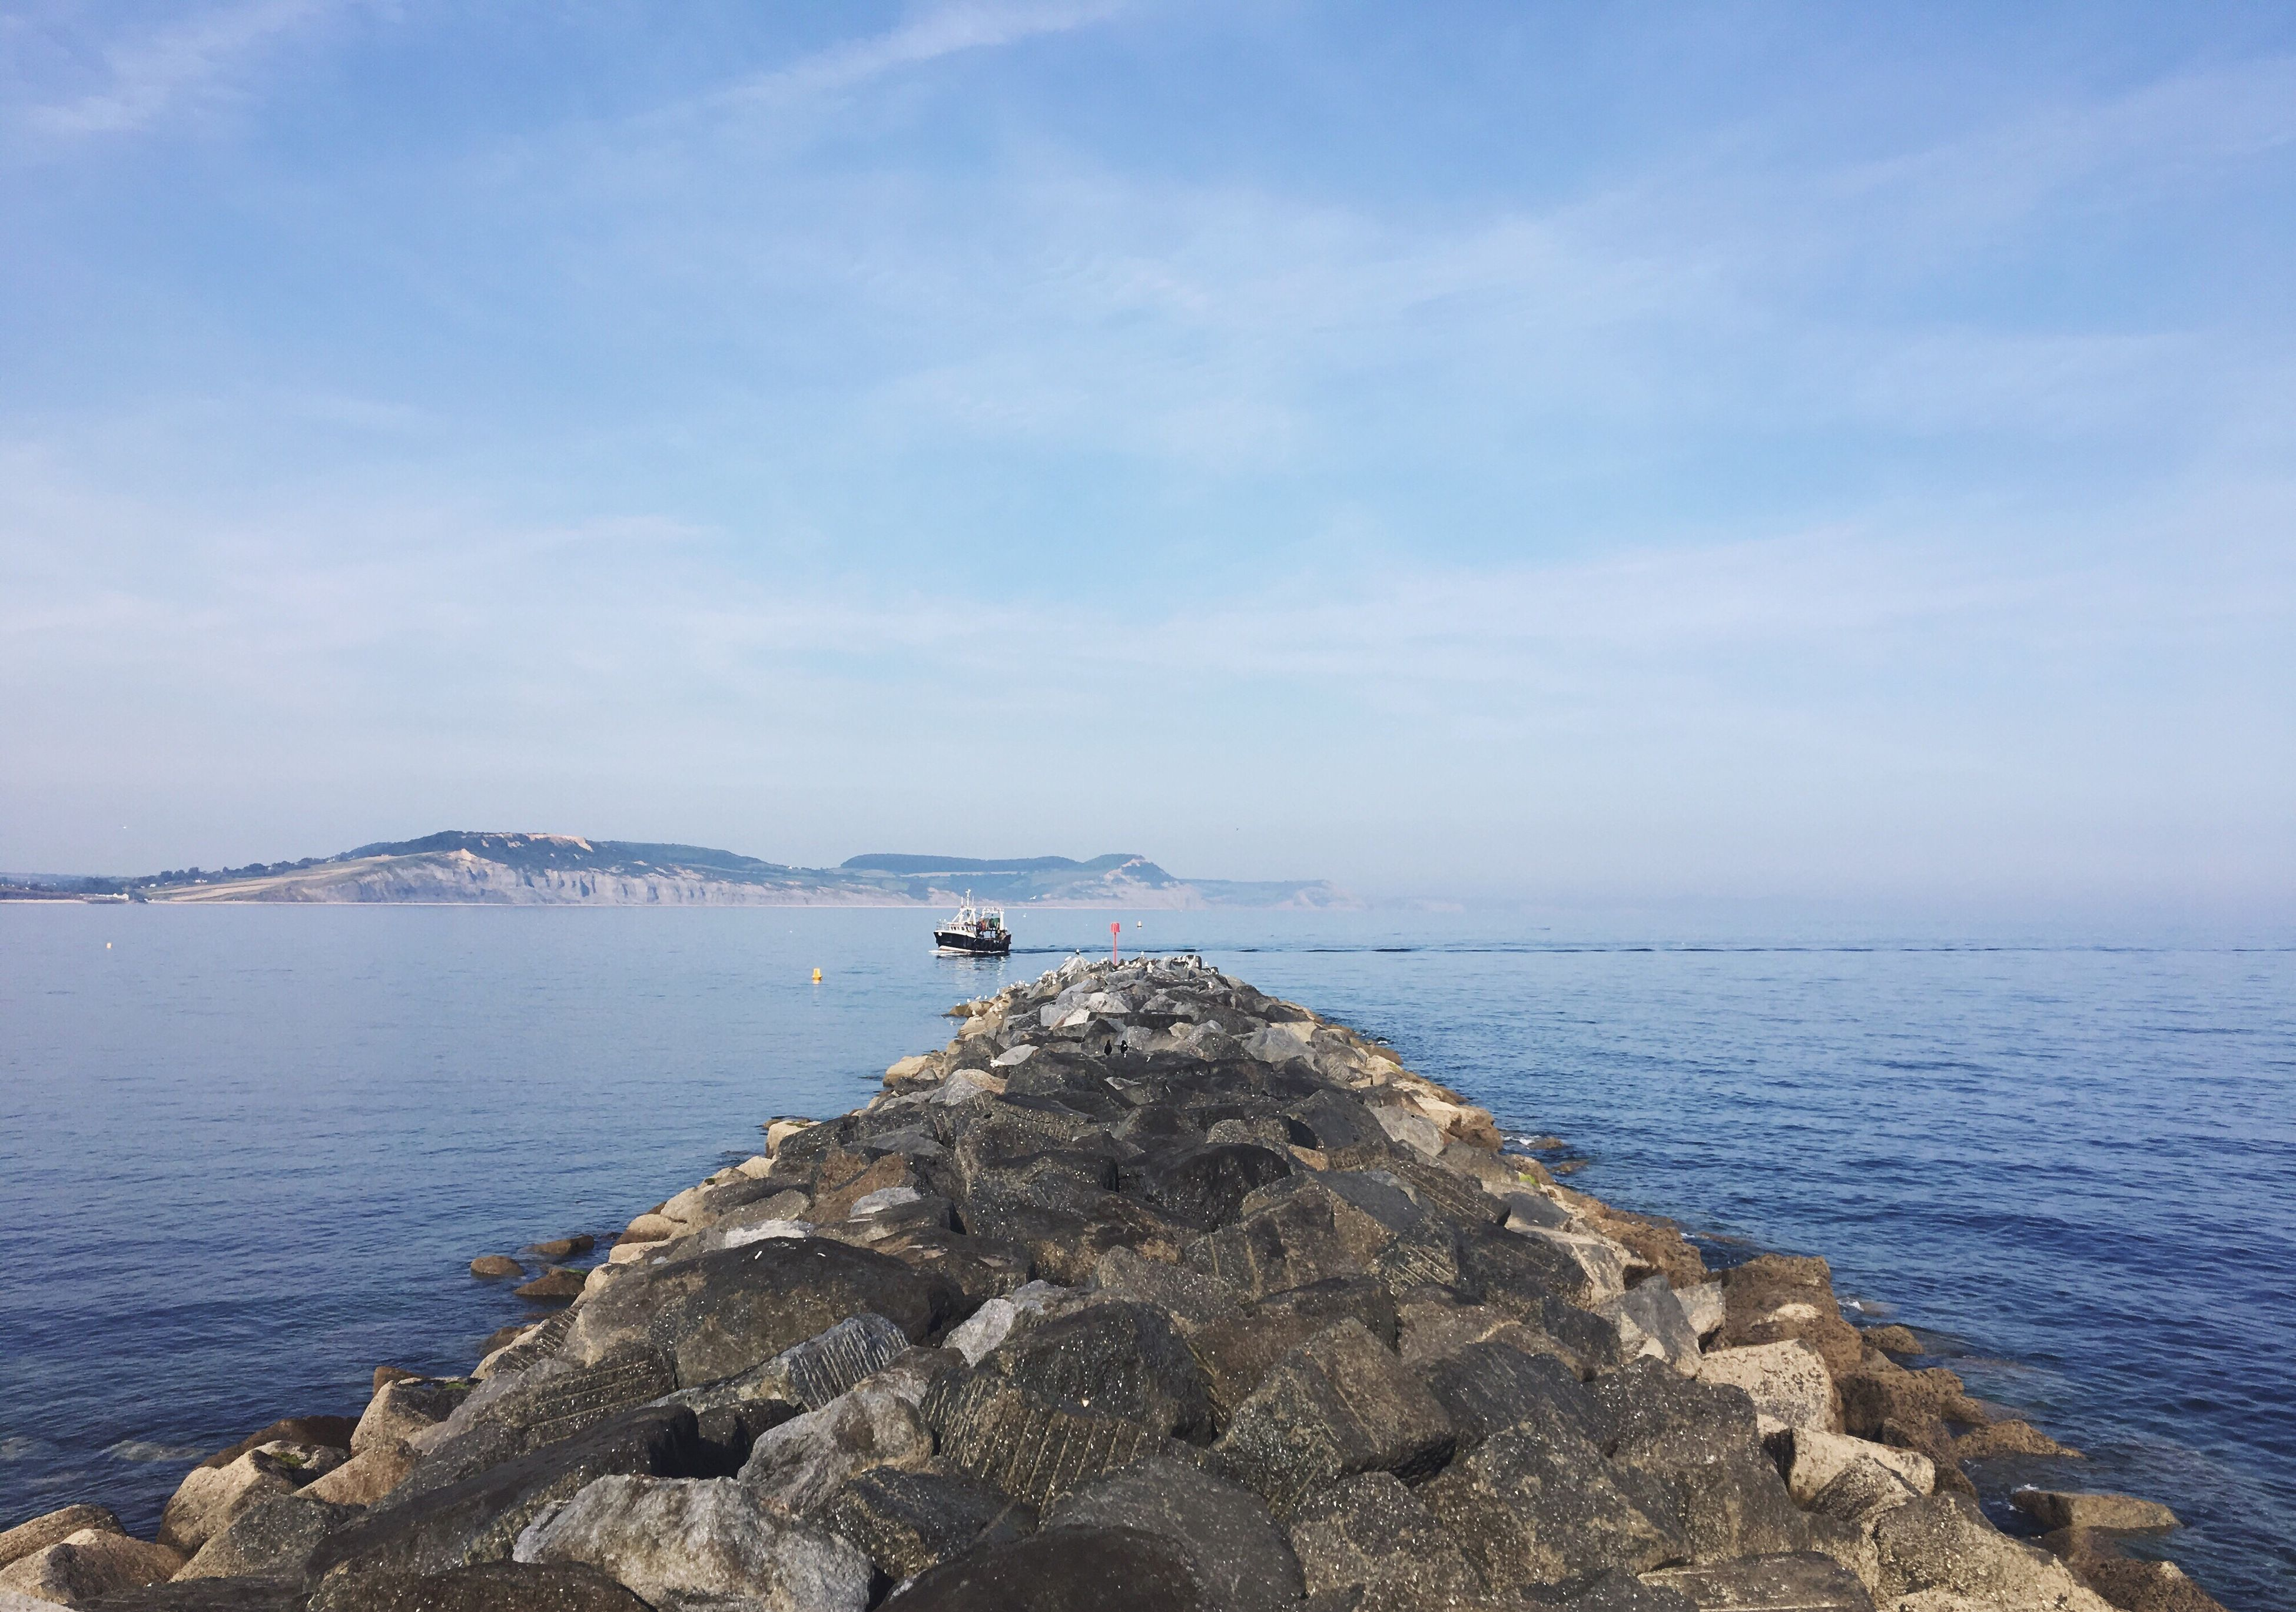 sea, water, nature, scenics, beauty in nature, outdoors, rock - object, tranquil scene, day, sky, tranquility, no people, blue, horizon over water, groyne